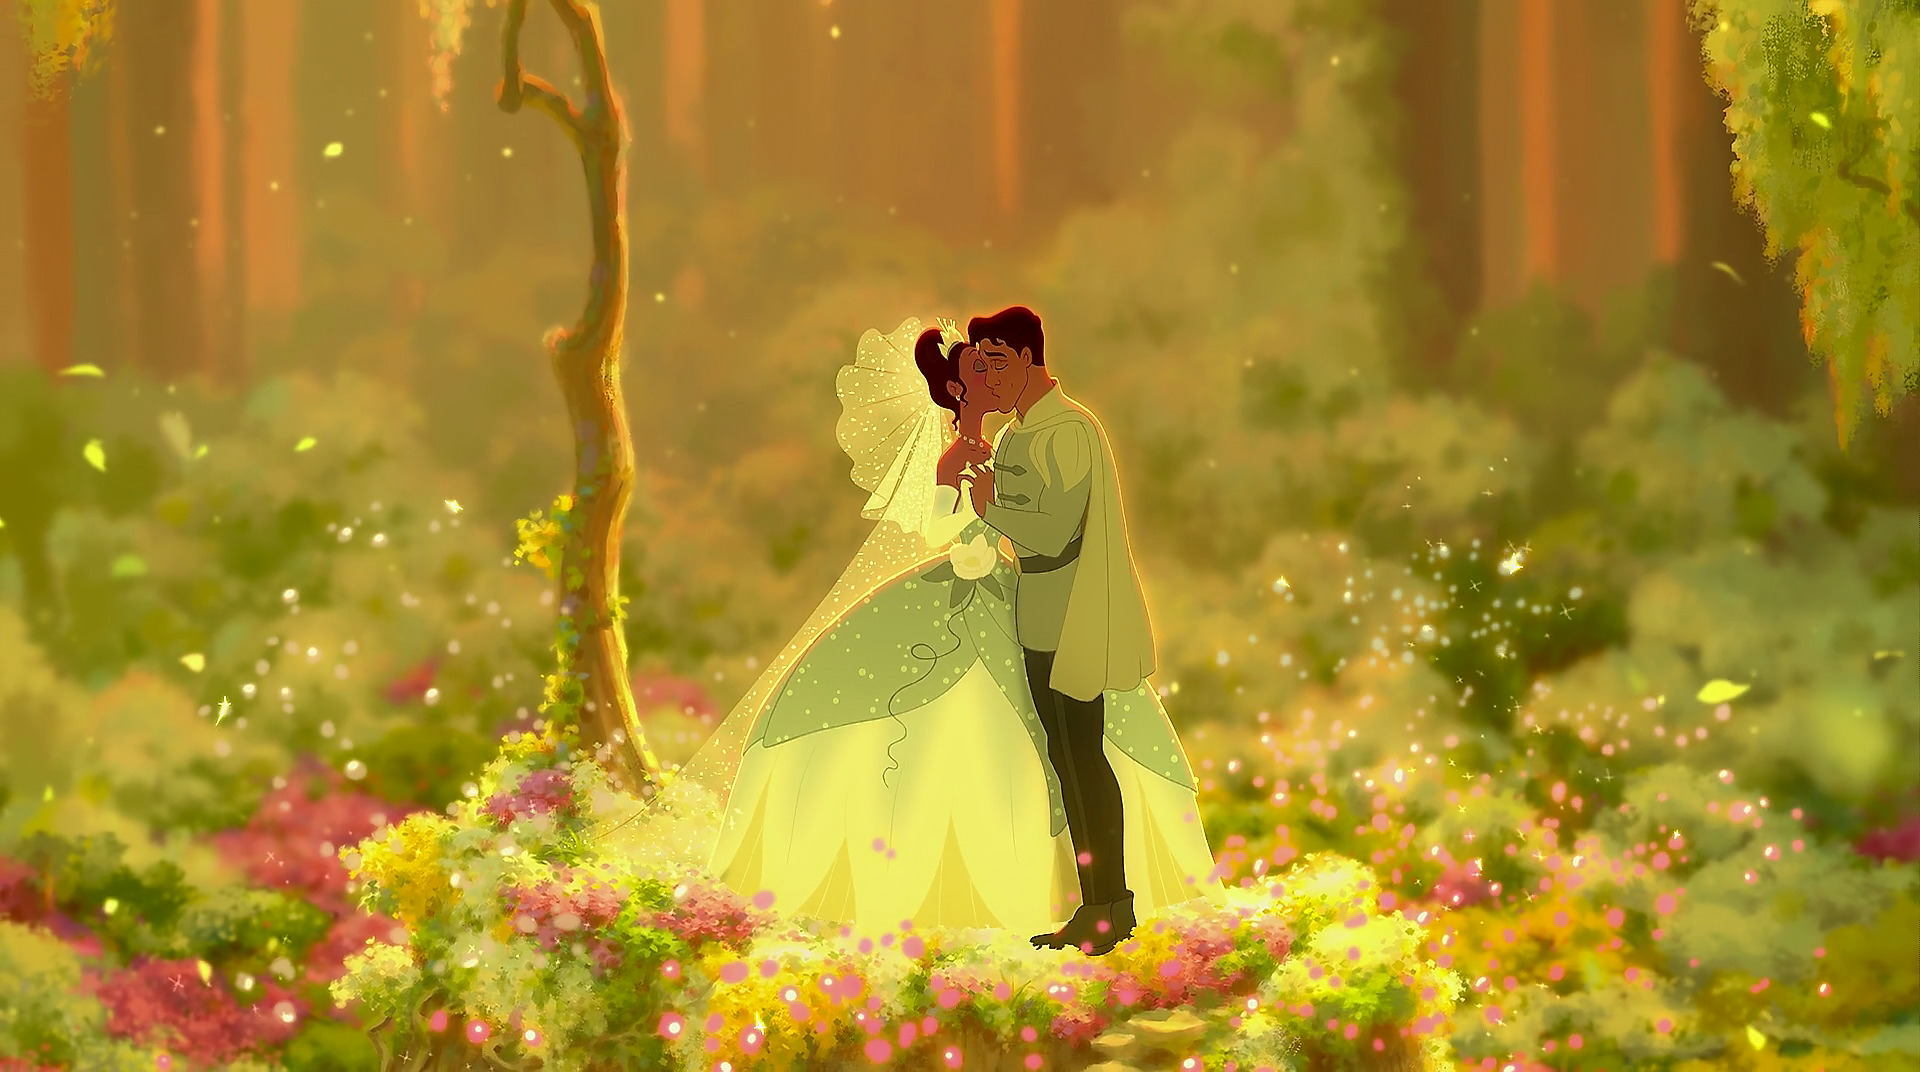 Tiana | Disney Wiki | FANDOM powered by Wikia